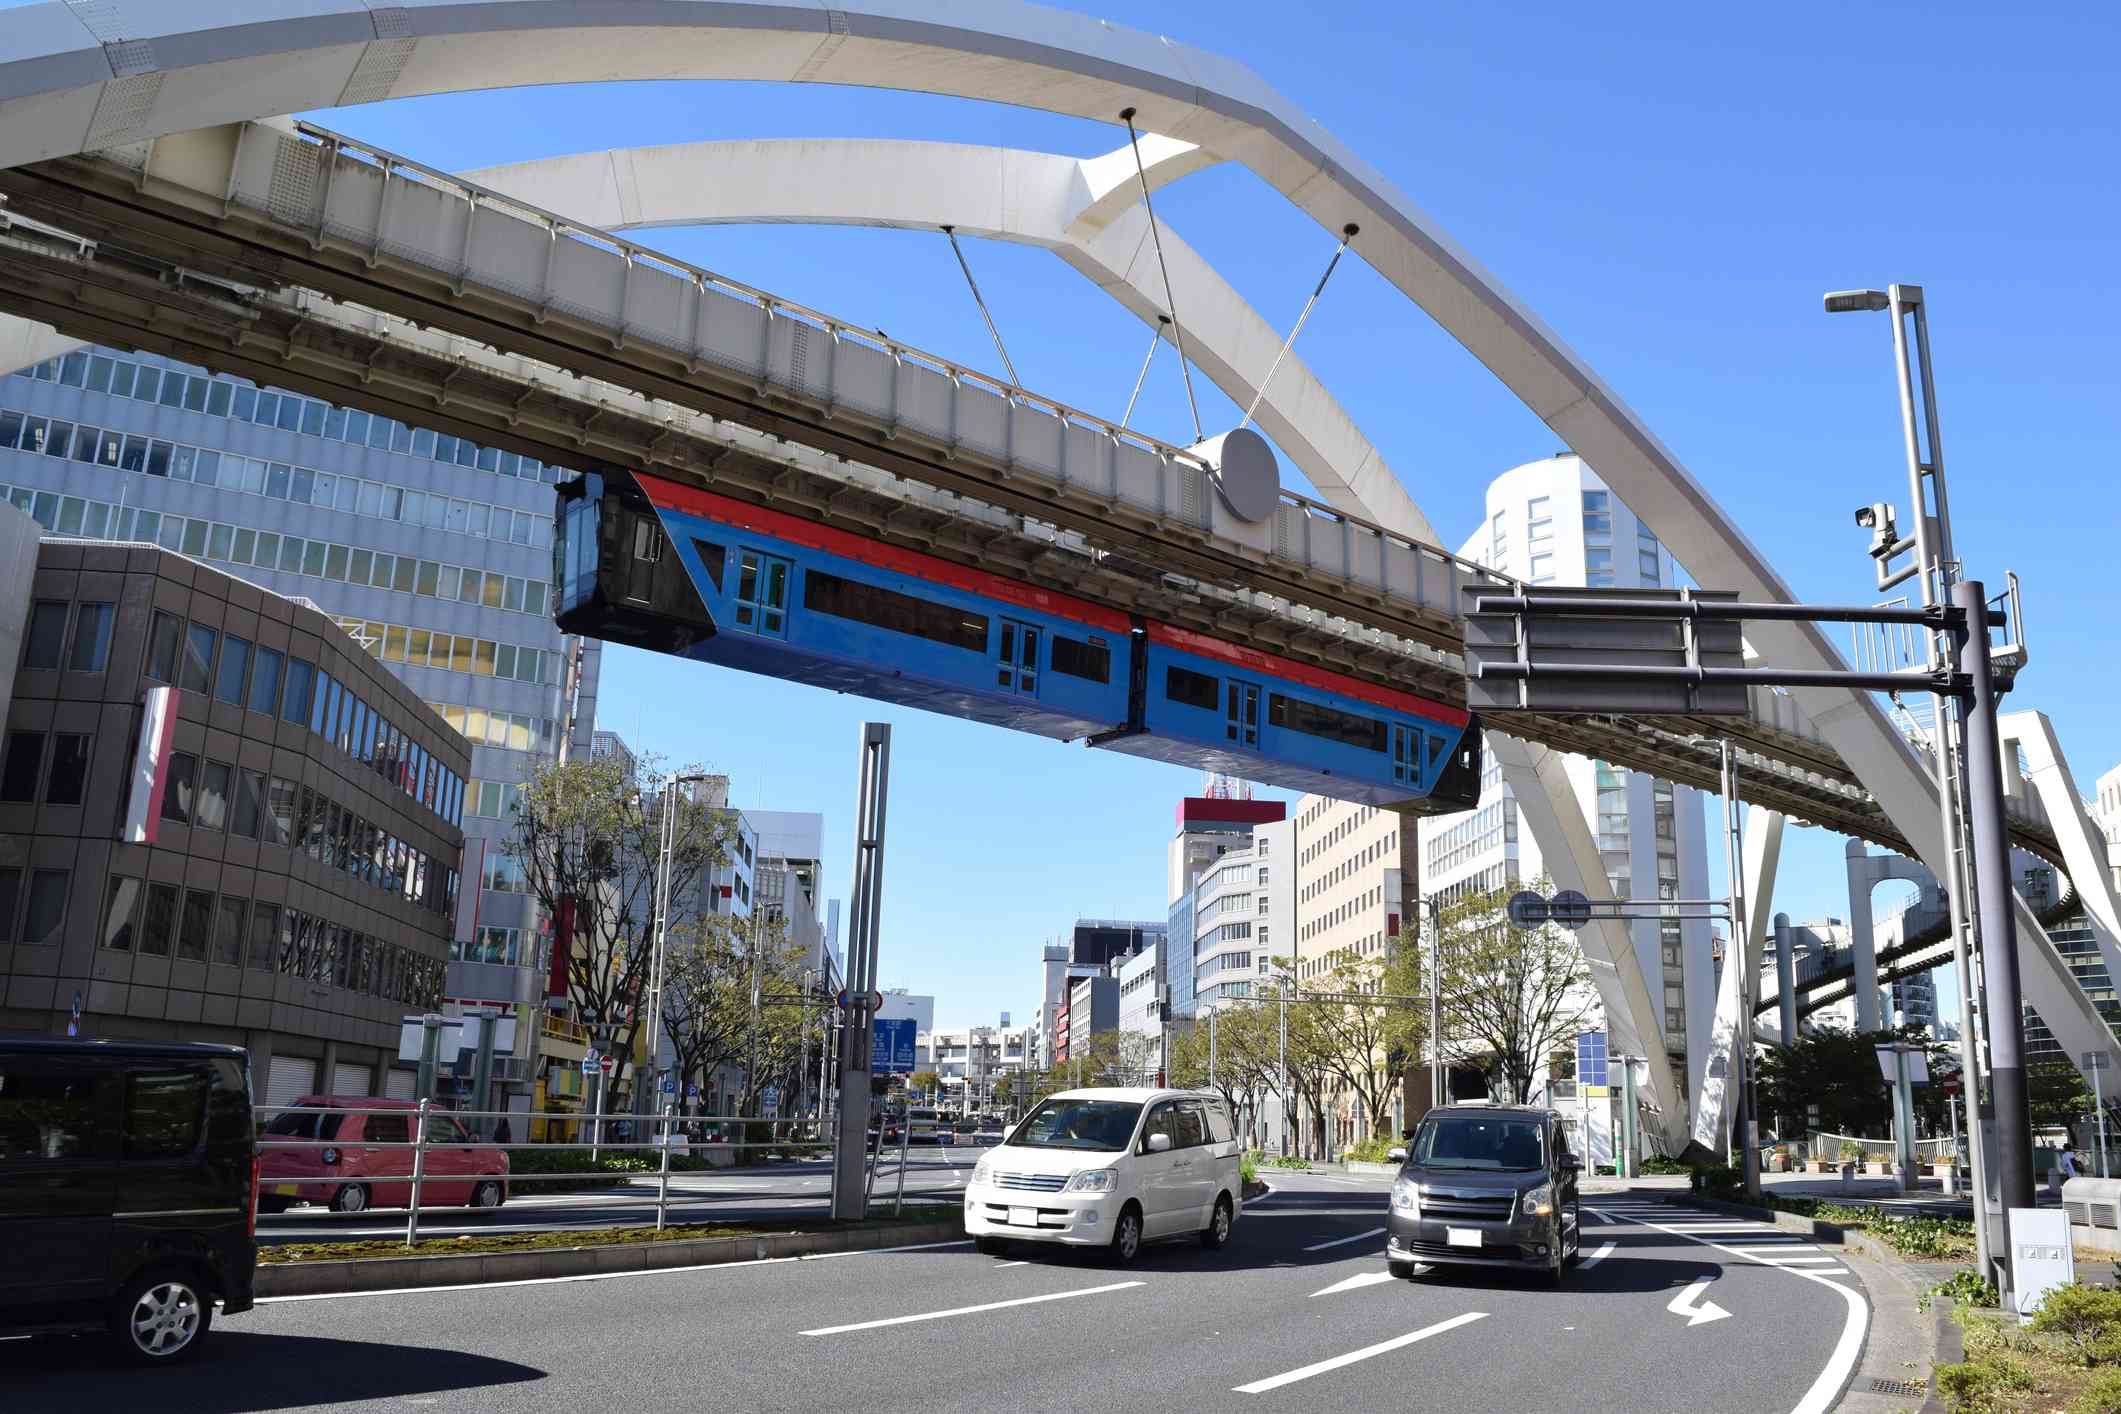 Chiba monorail running over a busy street